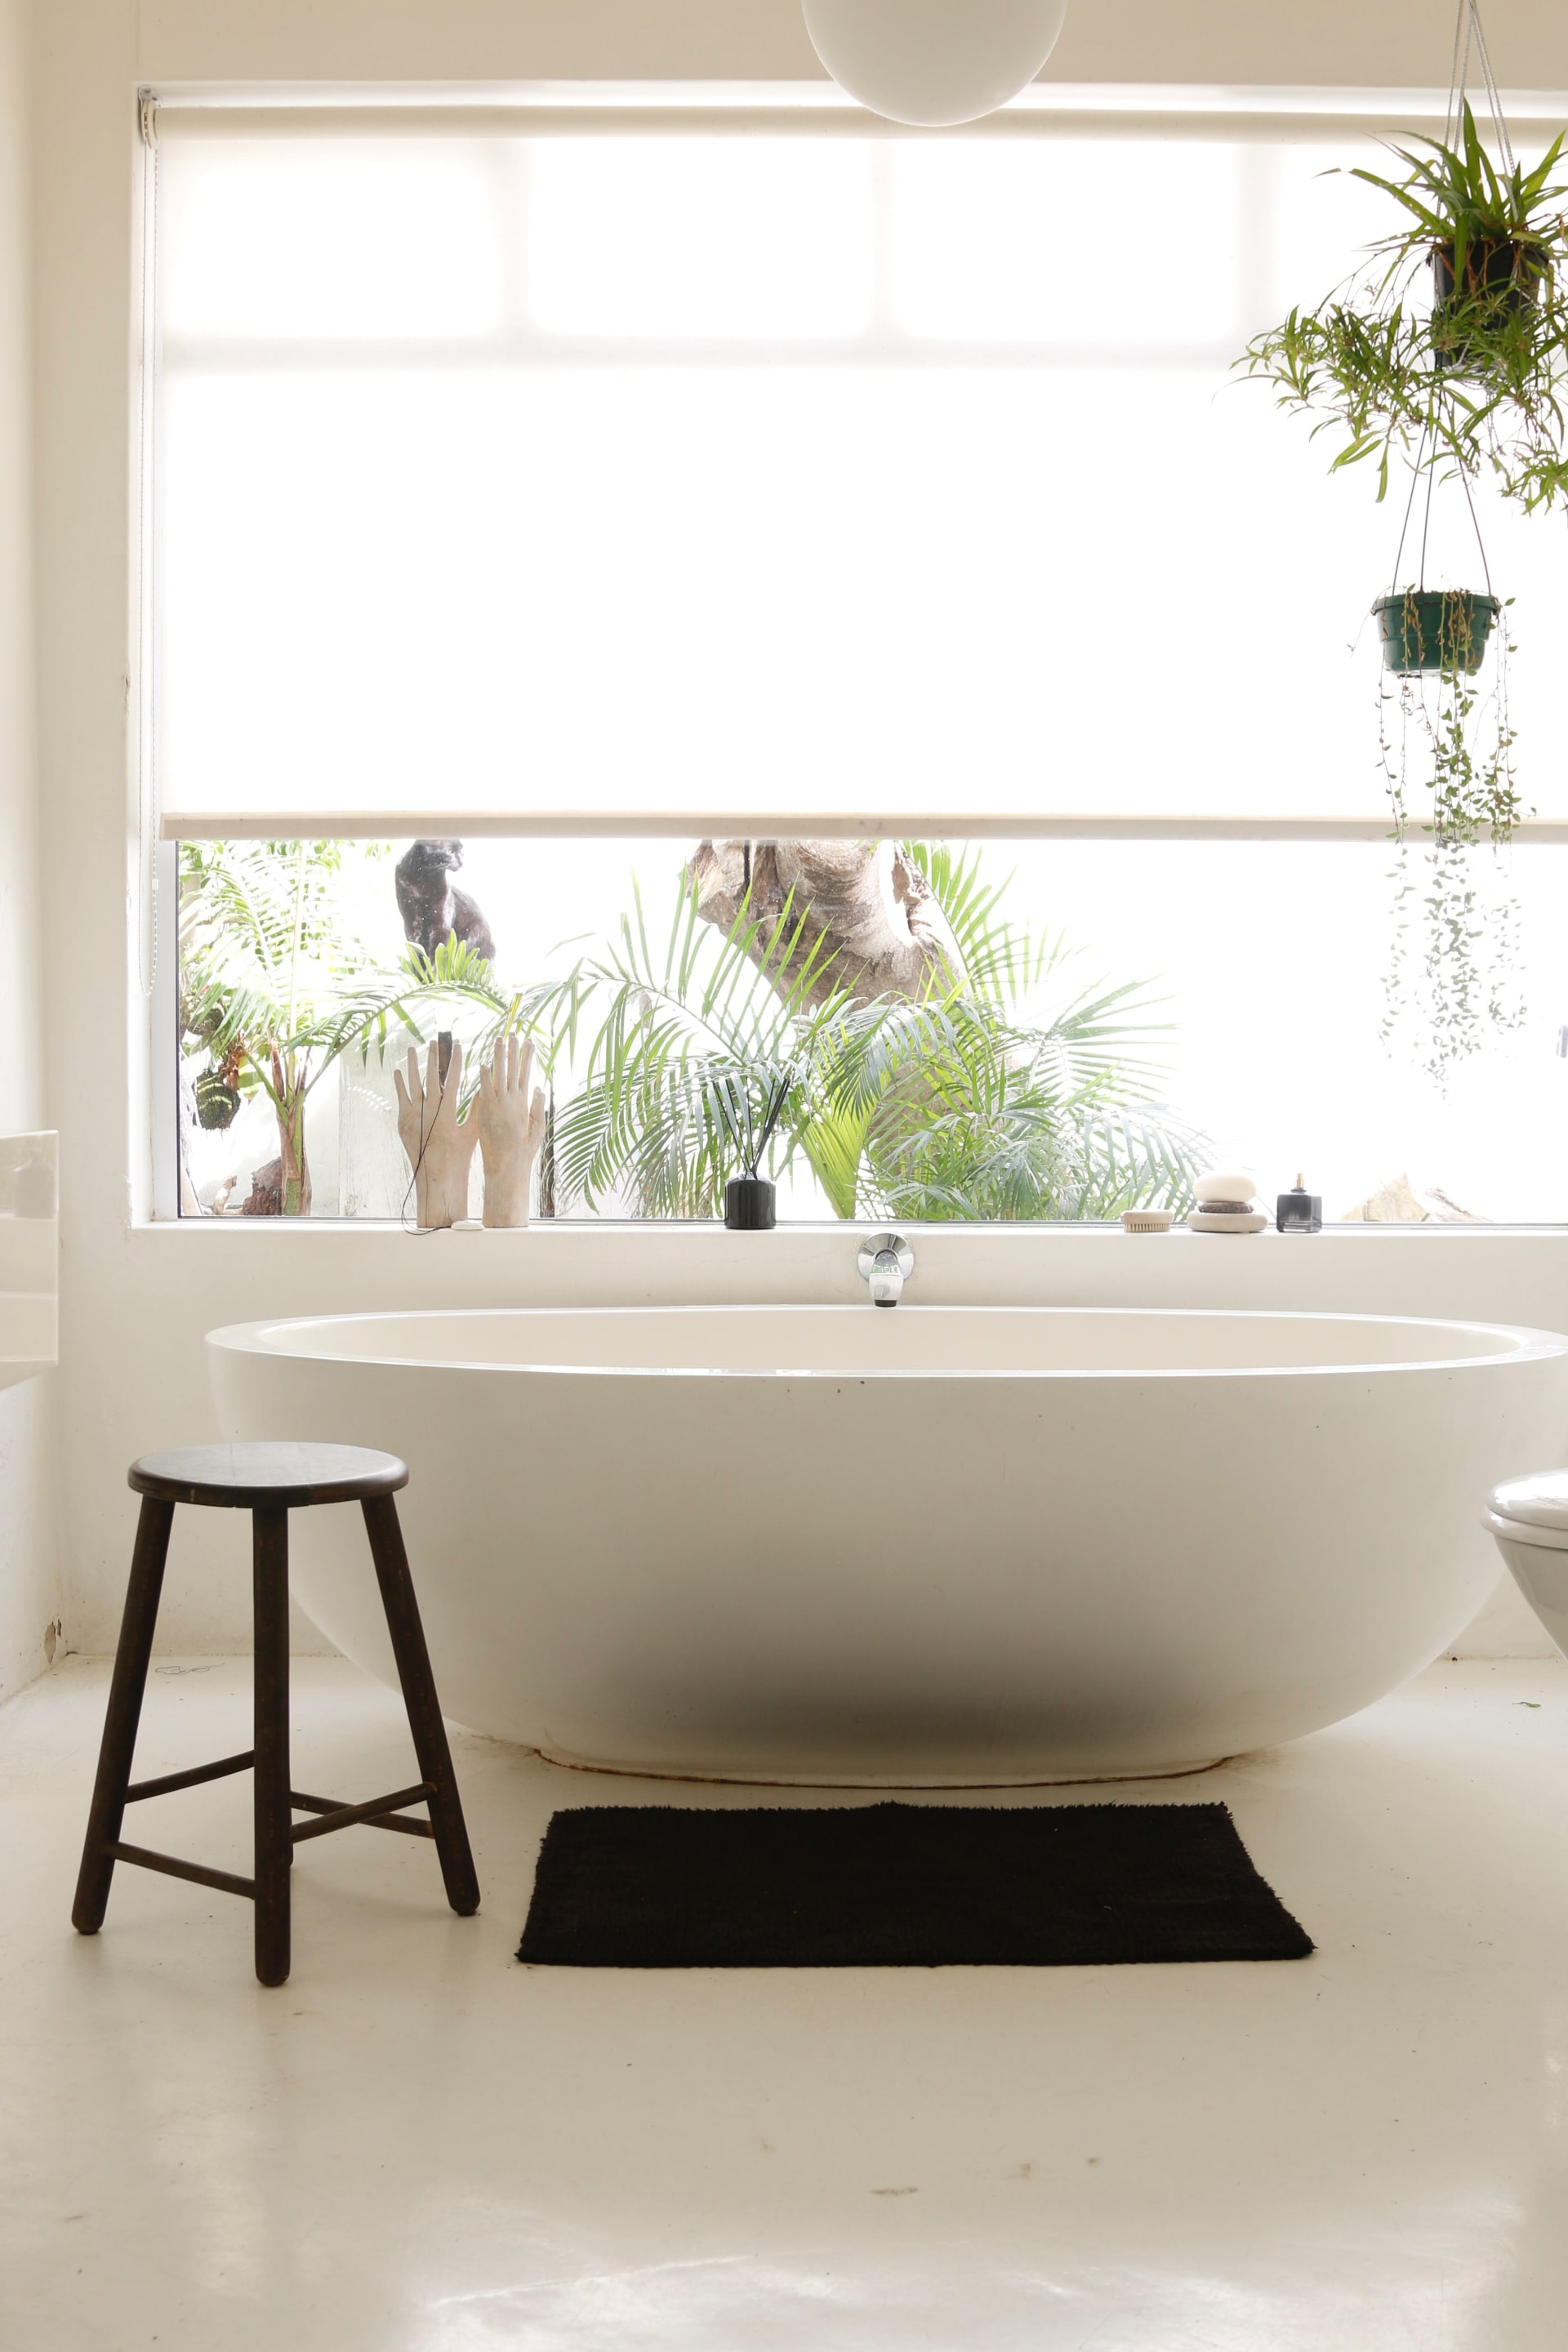 The main hero of thebathroom is this large white stone bath. The owner has introduced simple accents of black in the bathmat and towels.